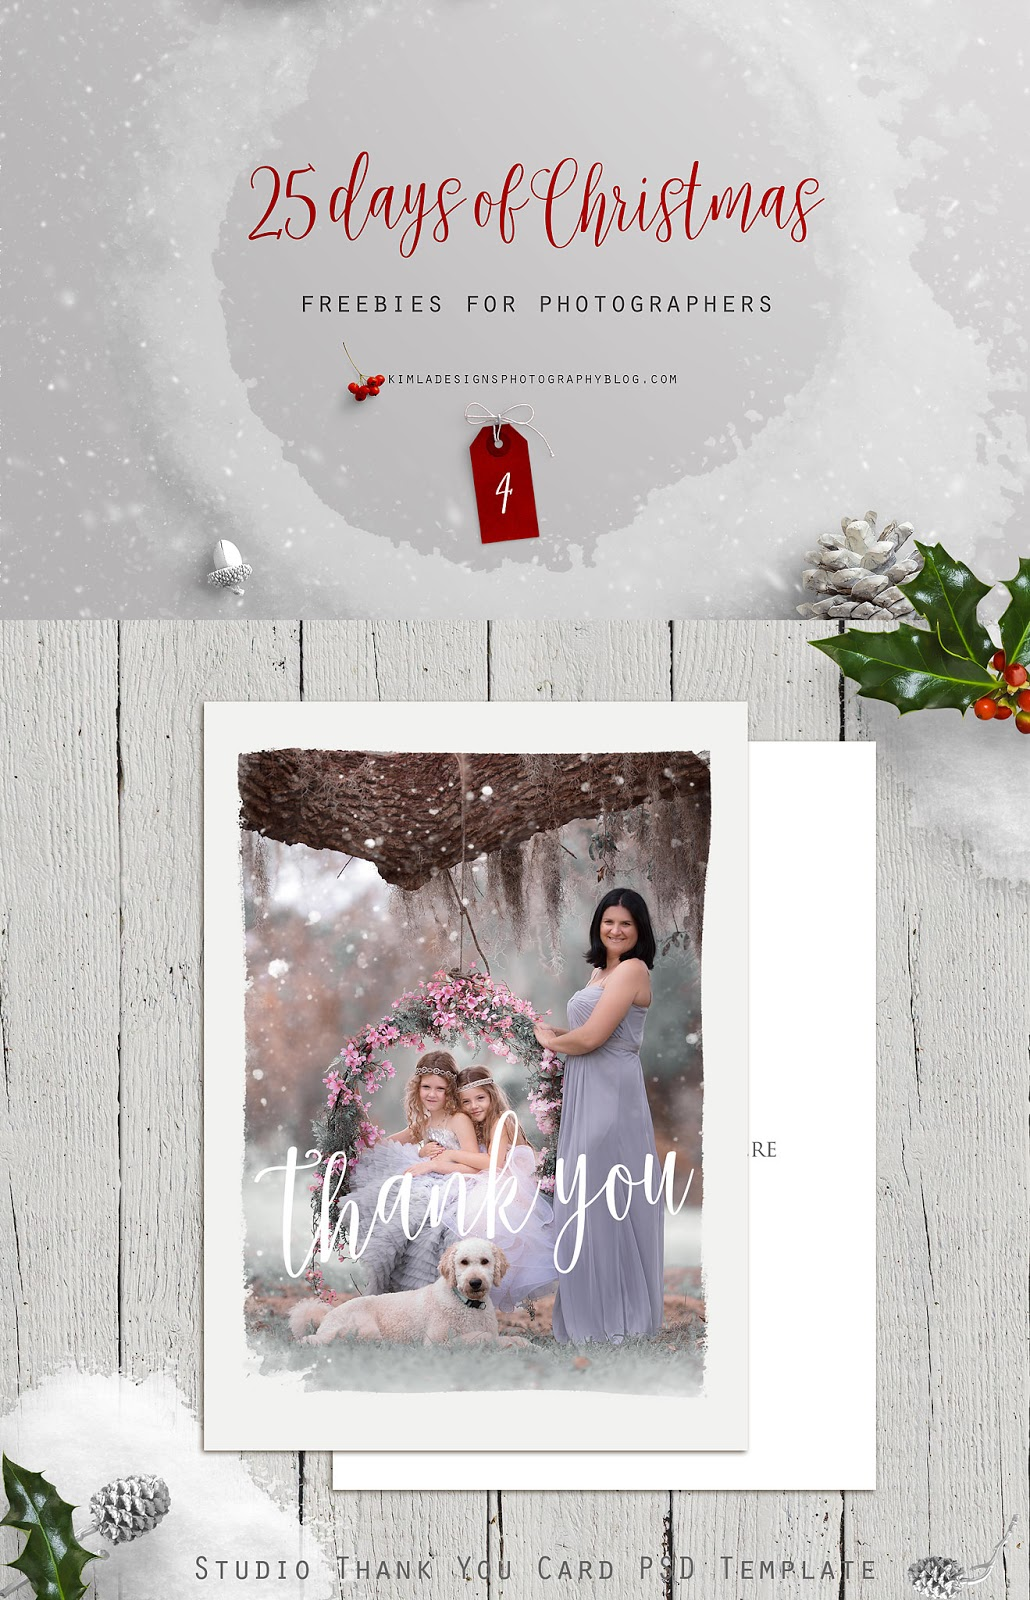 Day 4 of 25 Days of Christmas Freebies for Photographers